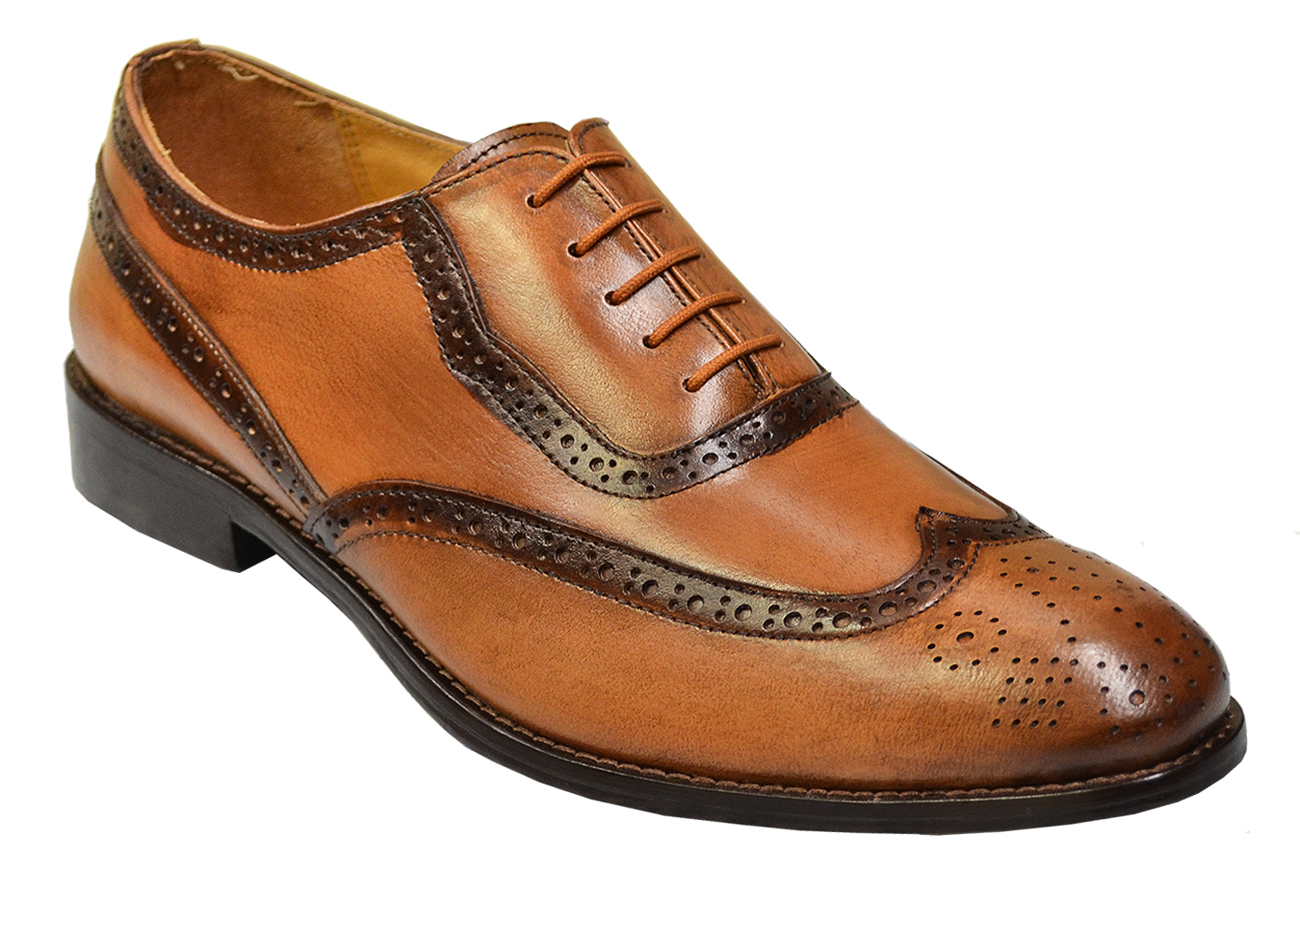 Liberty Taupe Chocolate Brown Soft Italian Calfskin Wingtip Hand Burnished Shoes 920